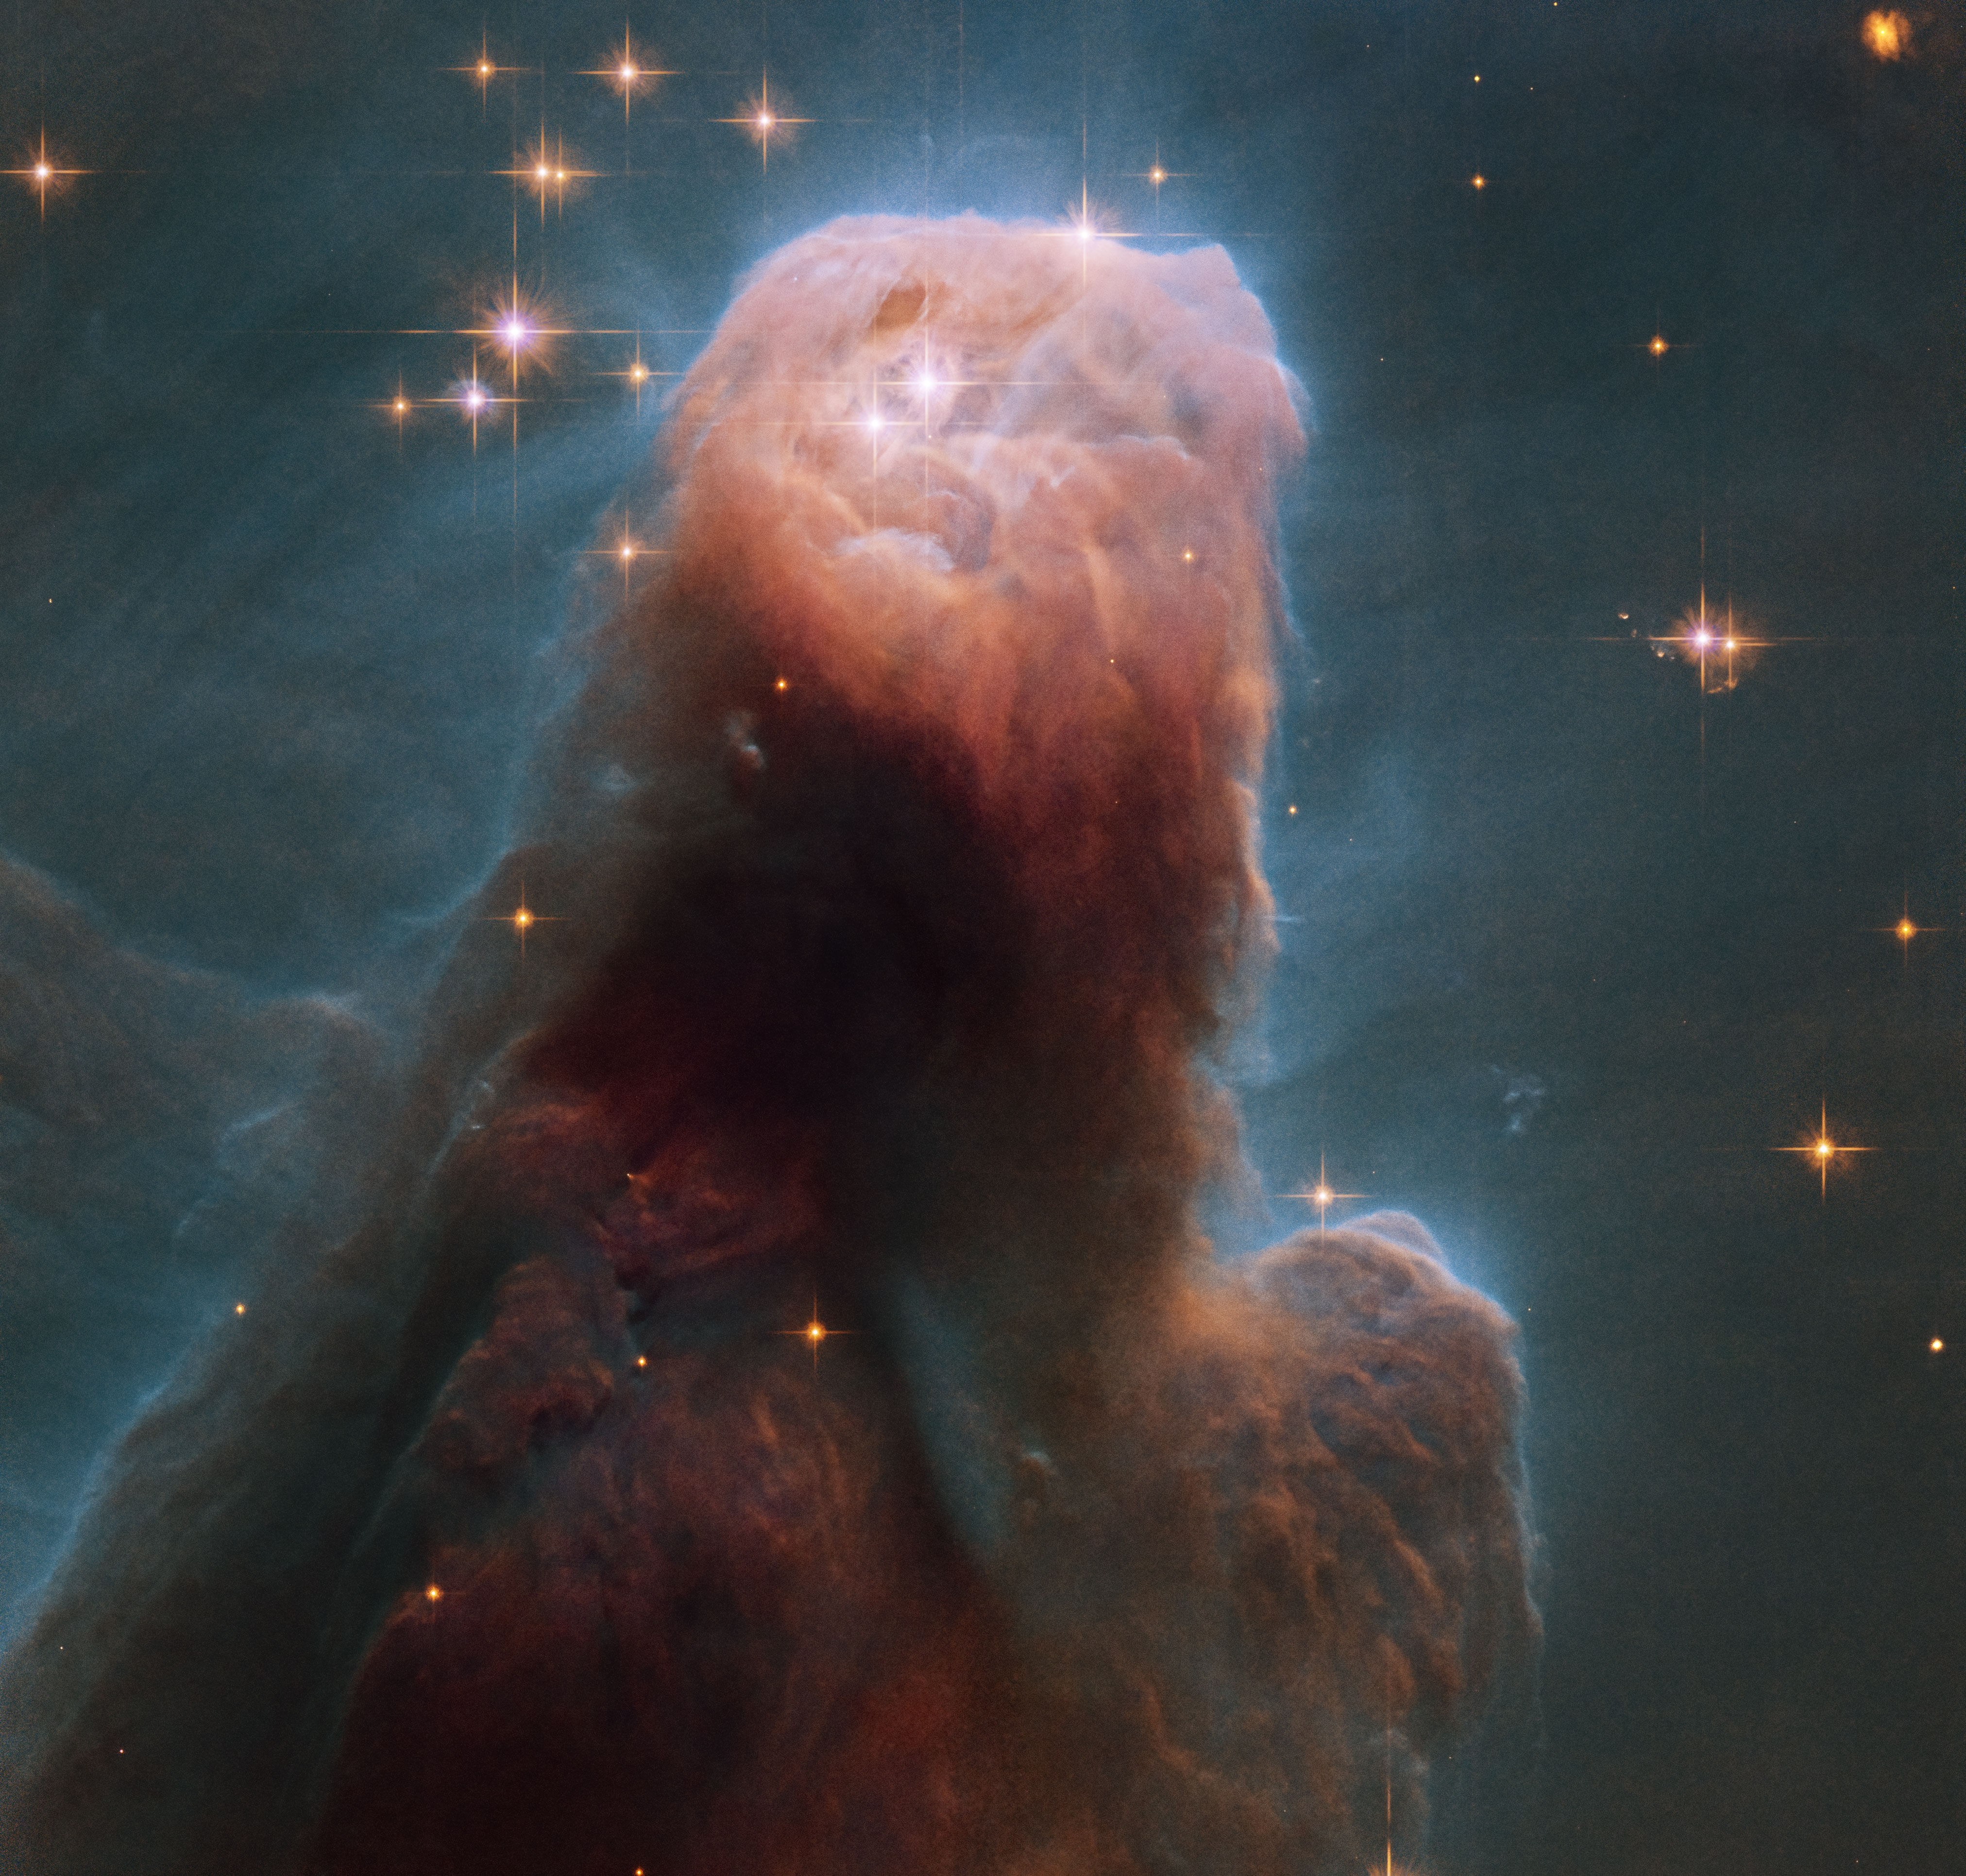 Across The Universe: The Cone Nebula from Hubble